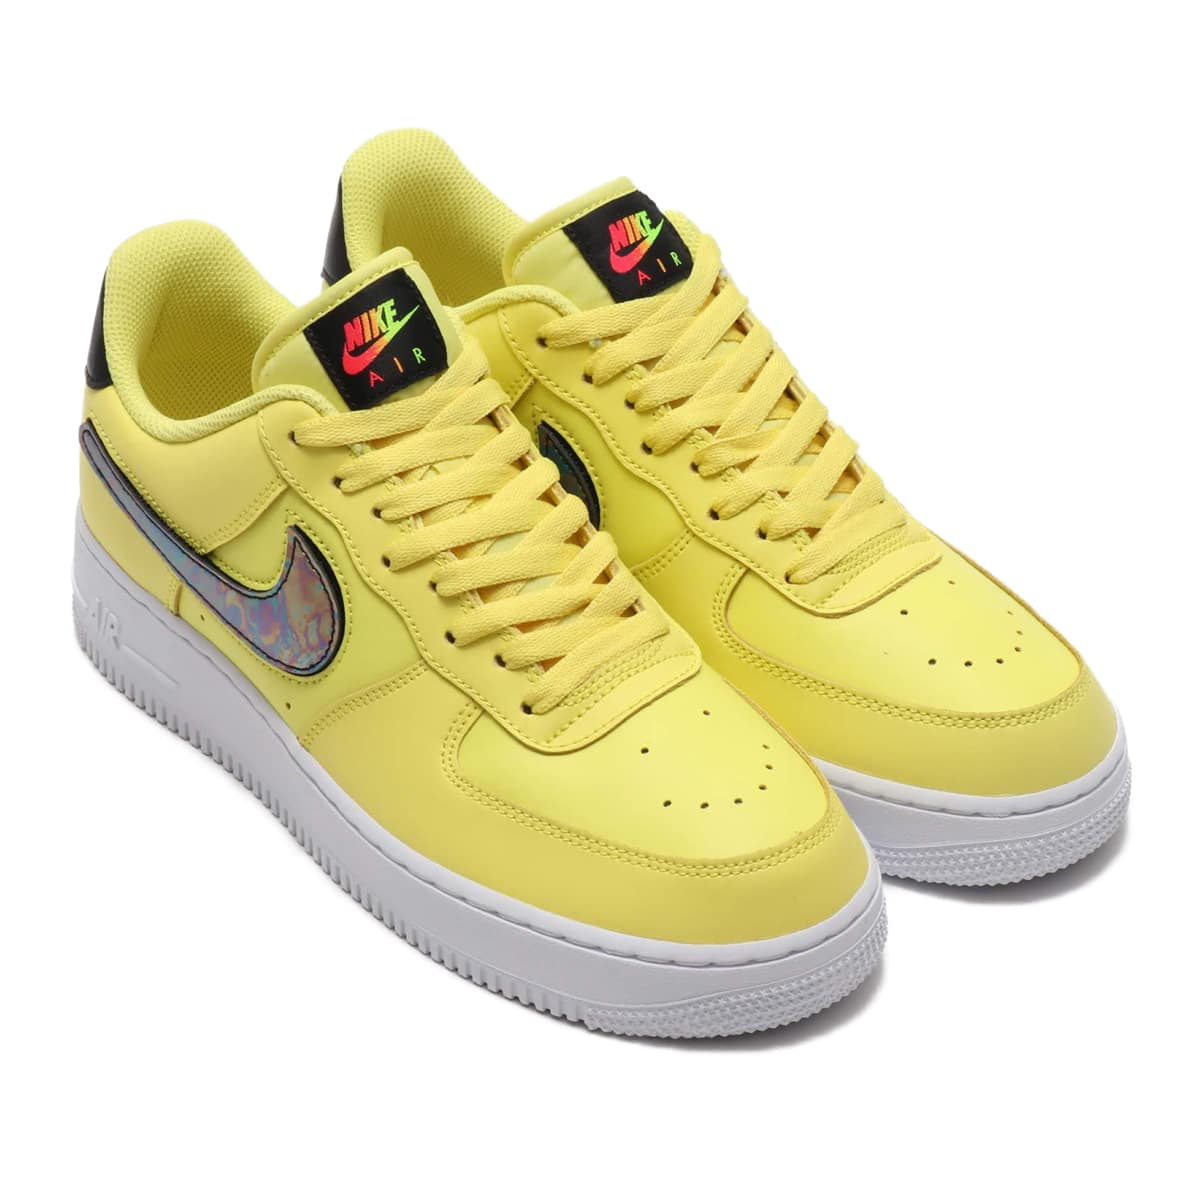 NIKE AIR FORCE 1 '07 LV8 3 YELLOW PULSE/BLACK-WHITE-WHITE 19FA-S_photo_large